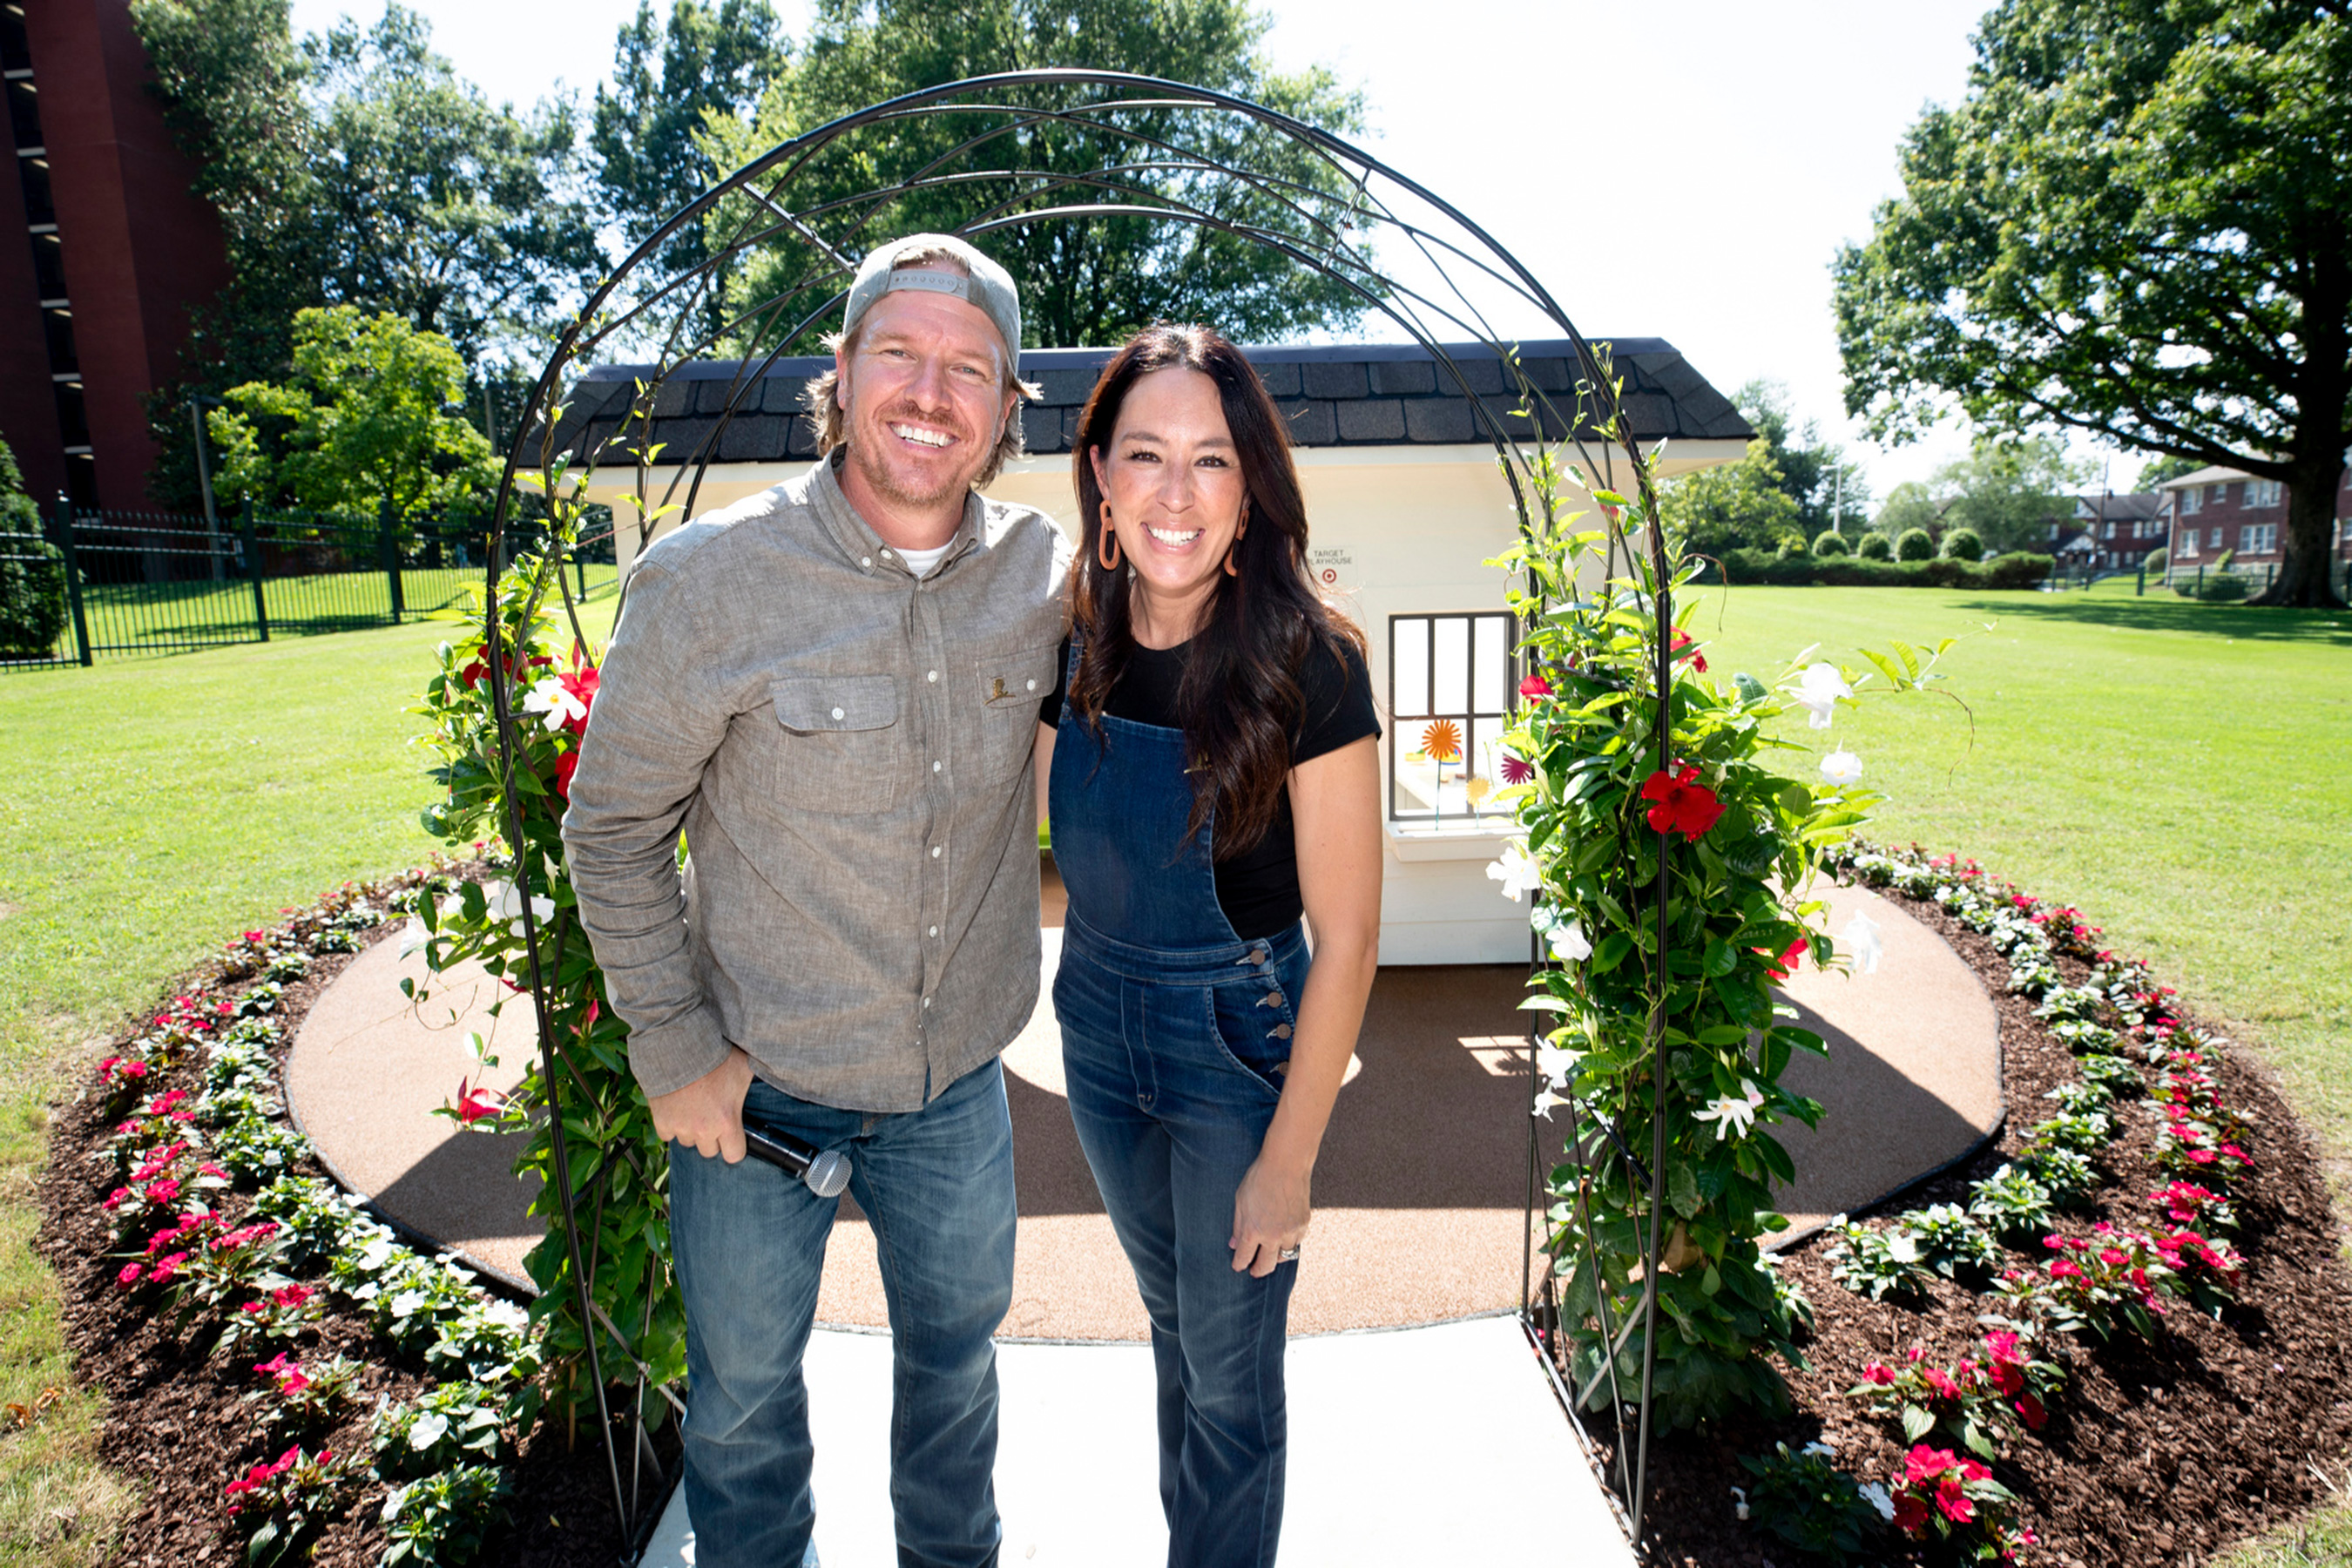 Joanna and Chip Gaines St. Jude 2